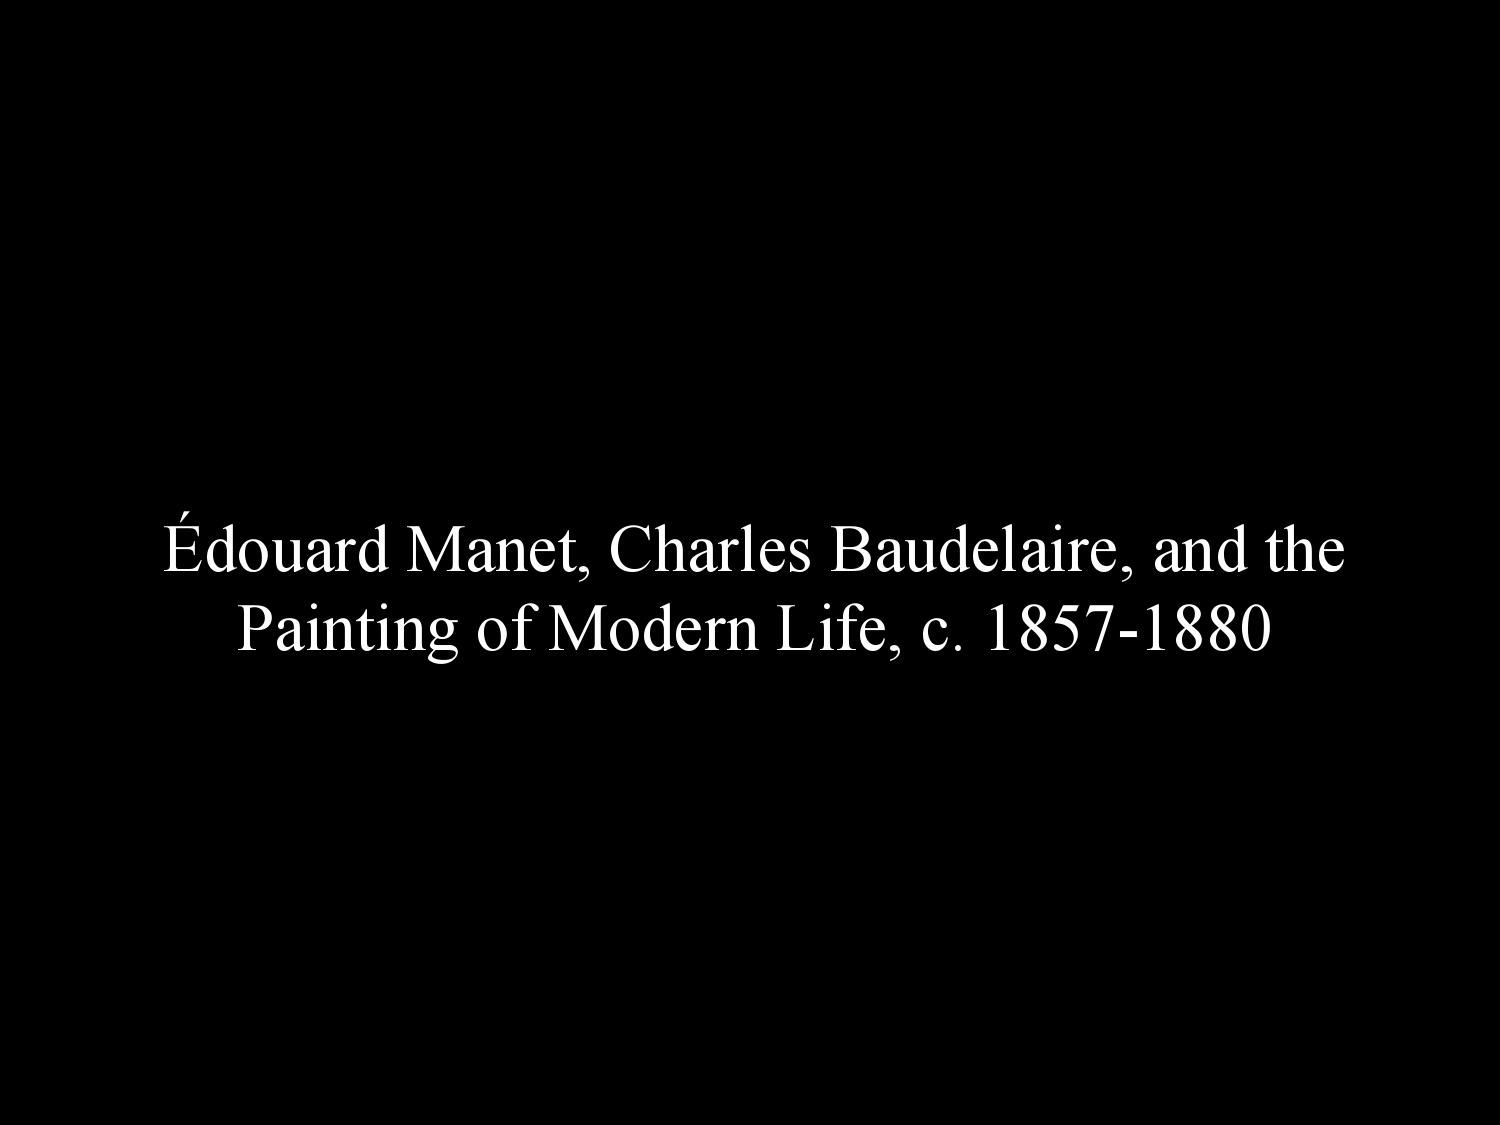 edouard manet and charles baudelaire edouard manet and manet